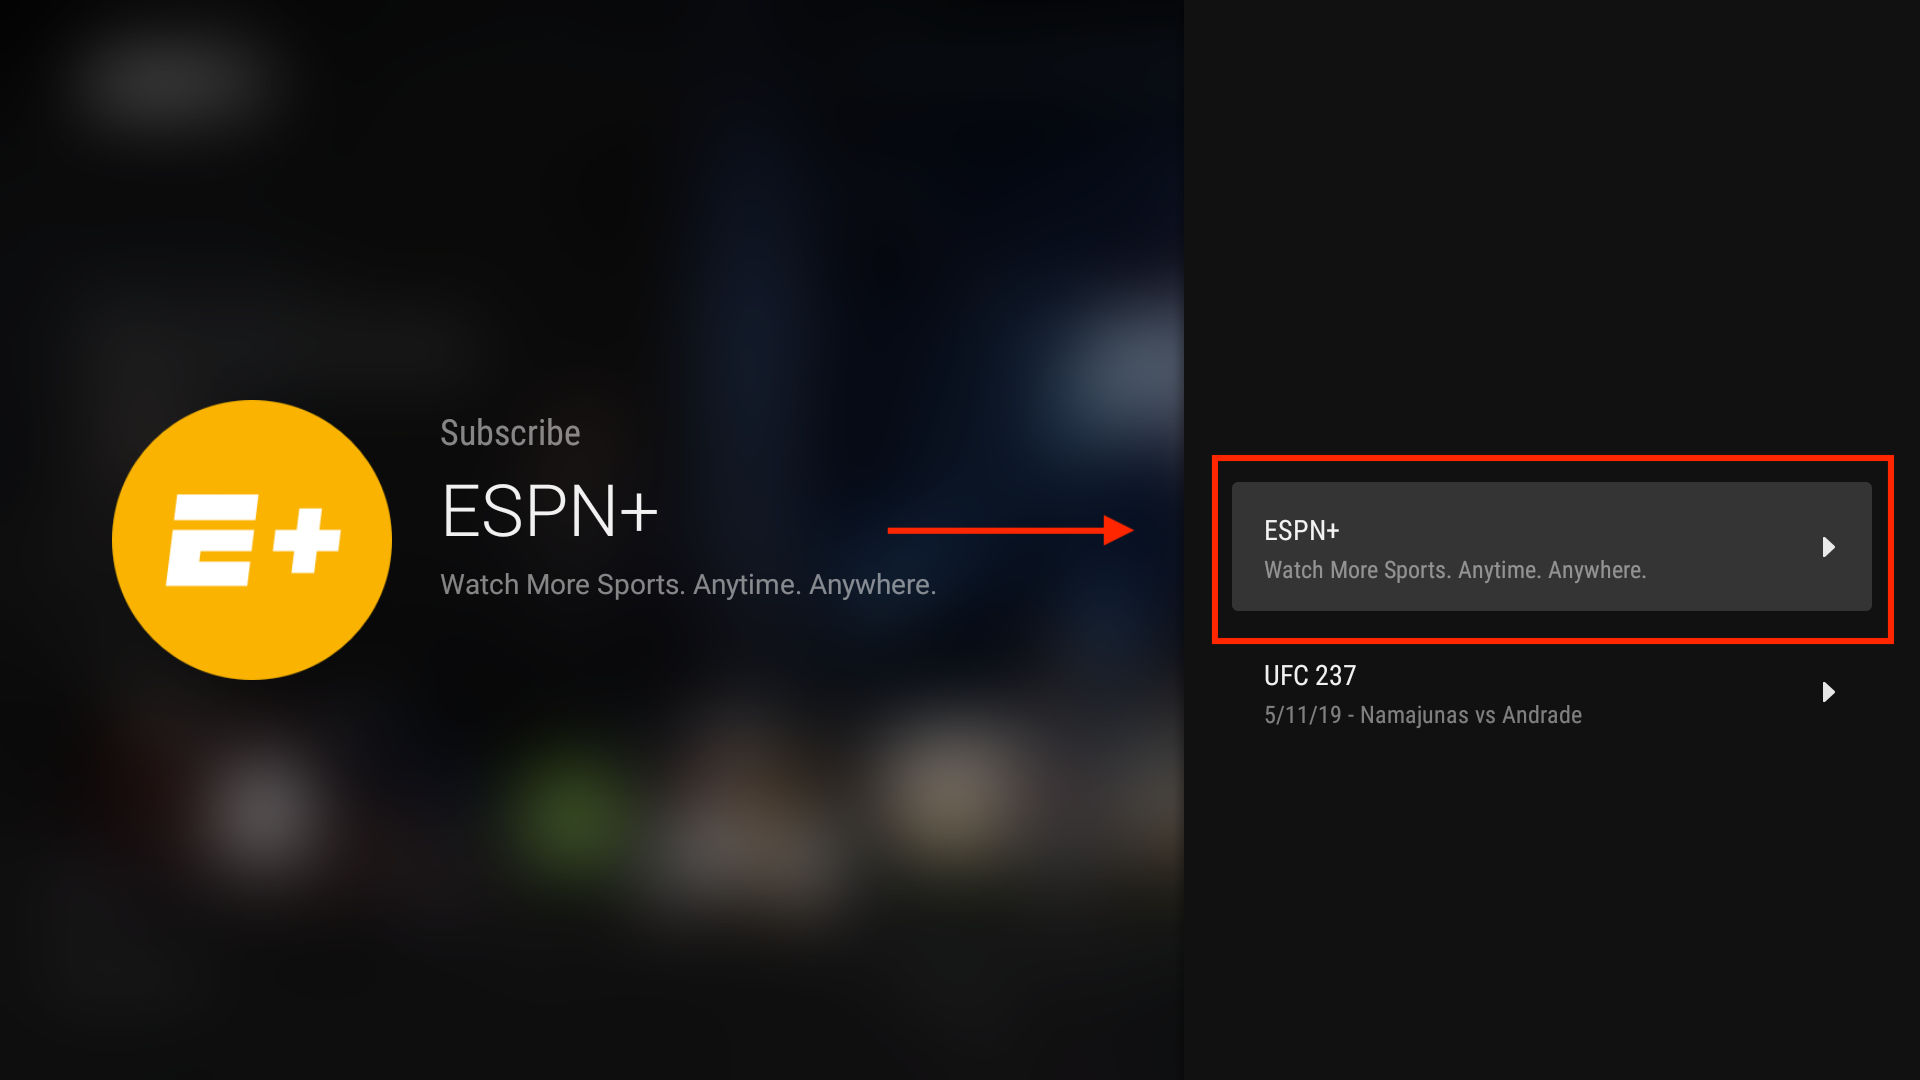 Amazon Fire TV / Android TV: Subscription Linking – ESPN+